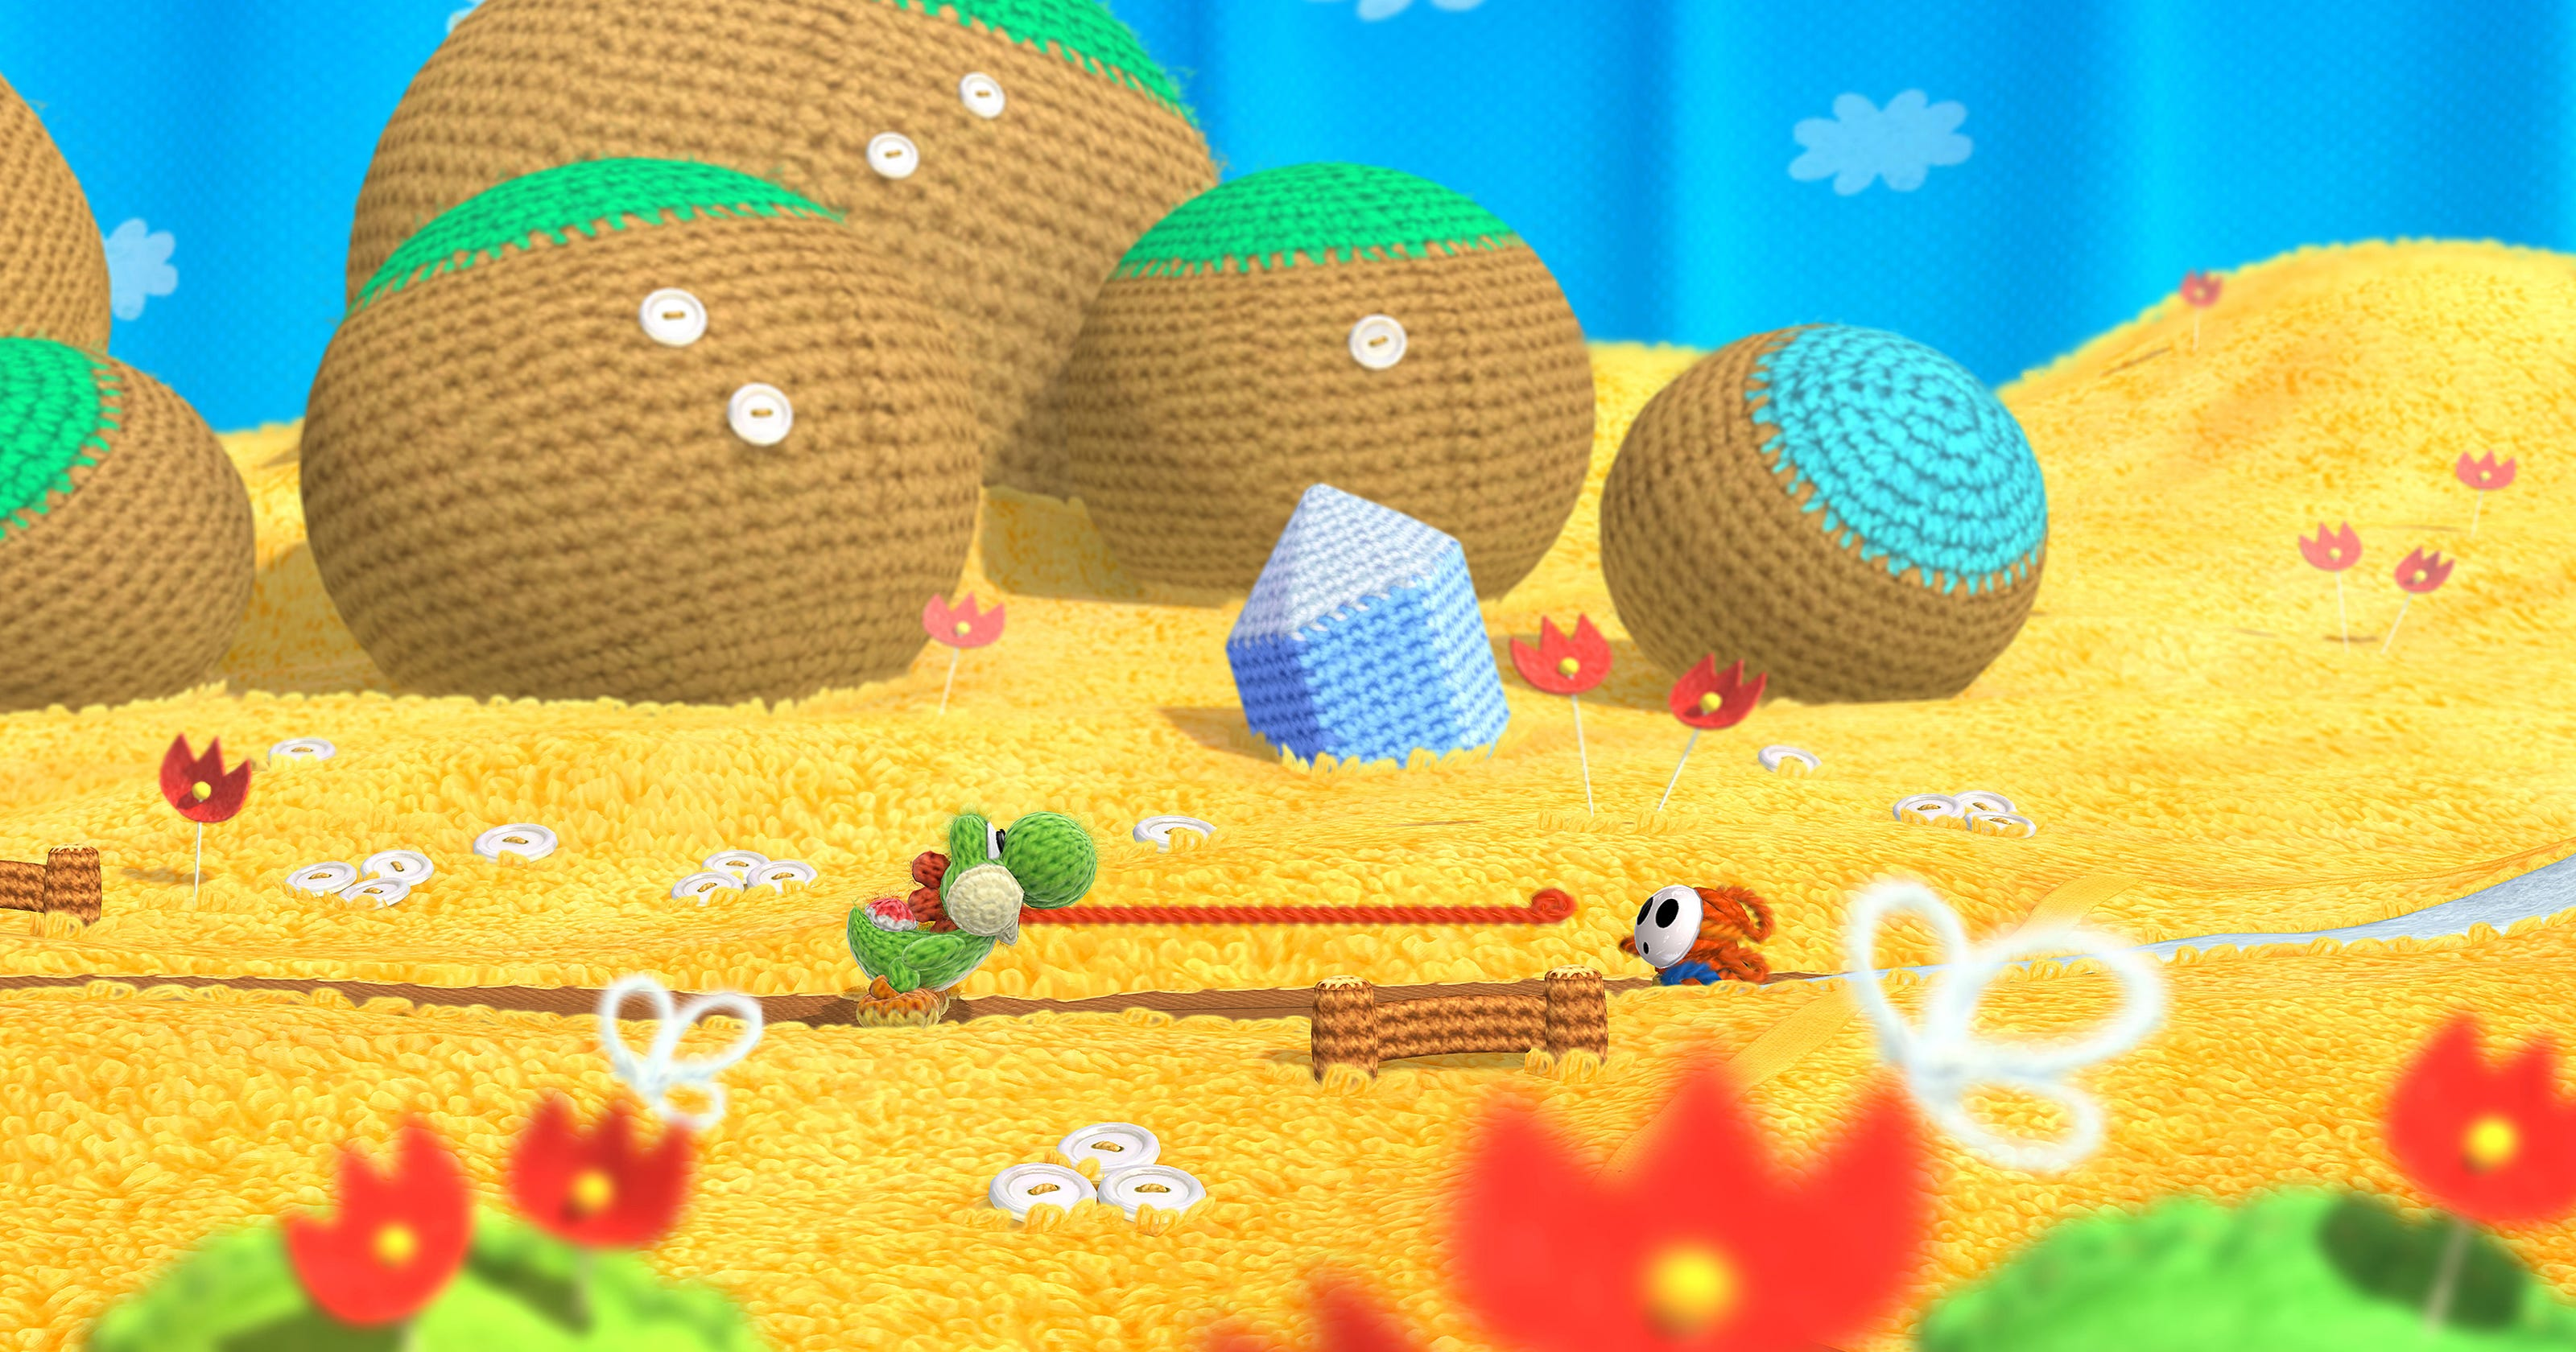 Image result for yoshi's woolly world